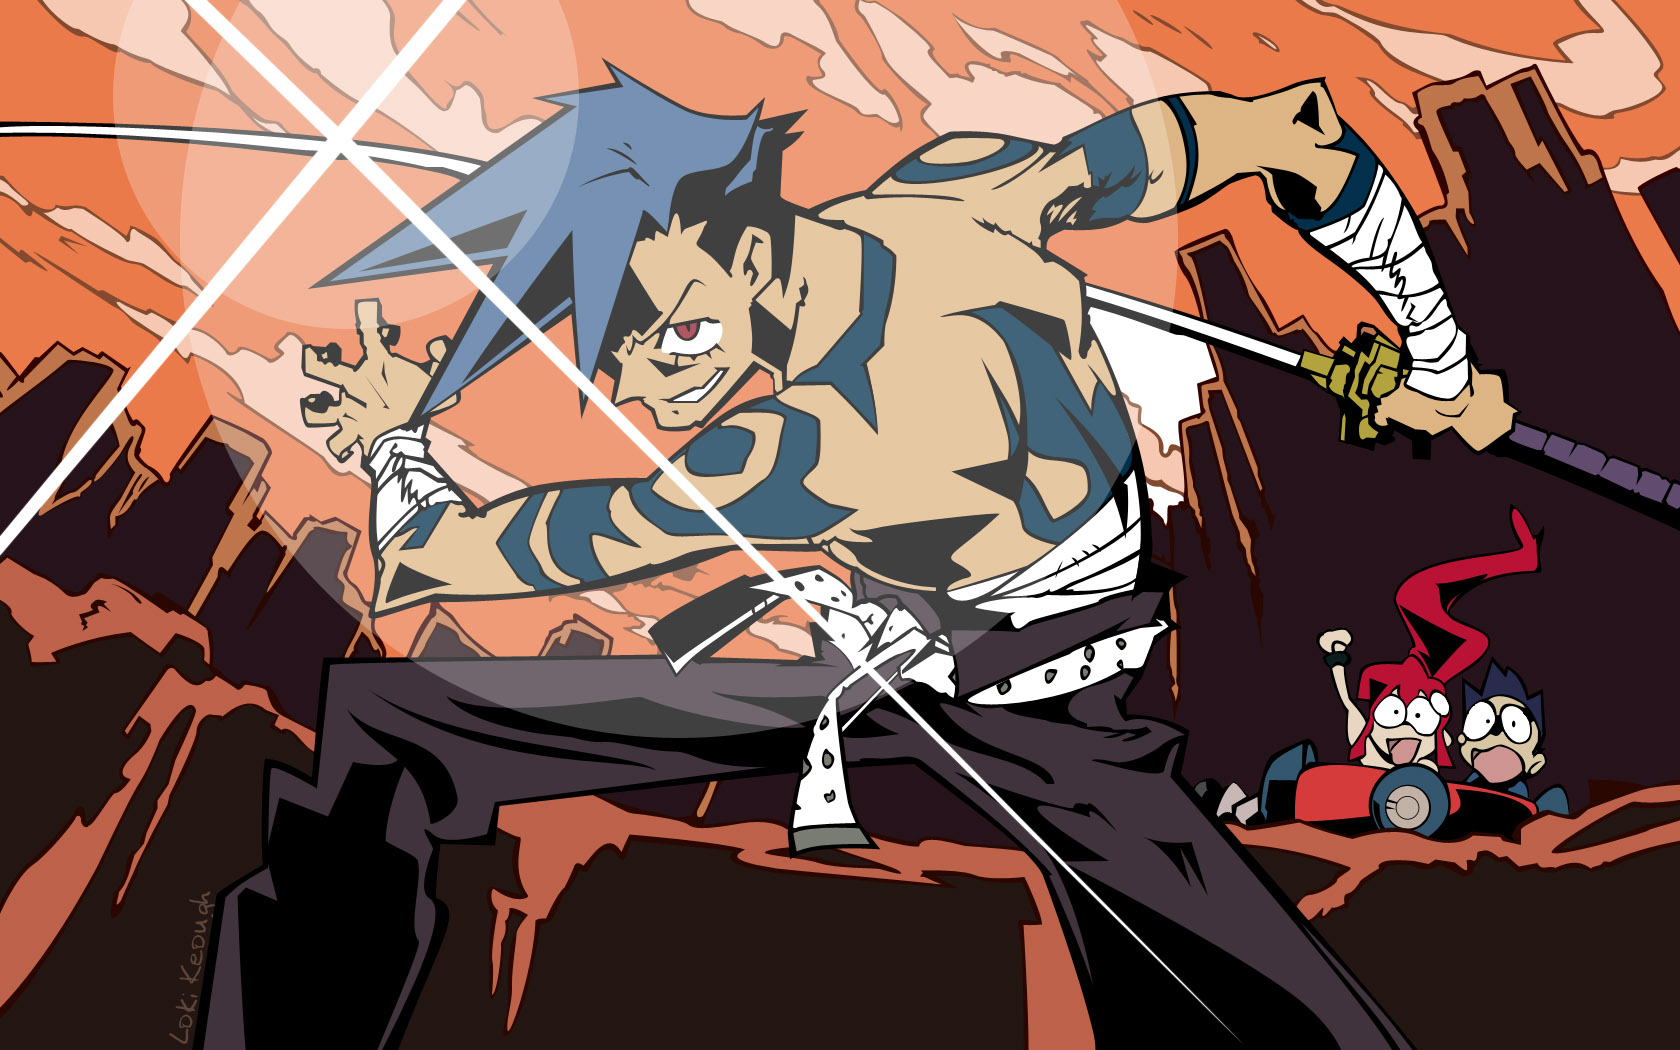 Art from anime cult classic Gurren Lagann, including Kamina Simon and Yoko